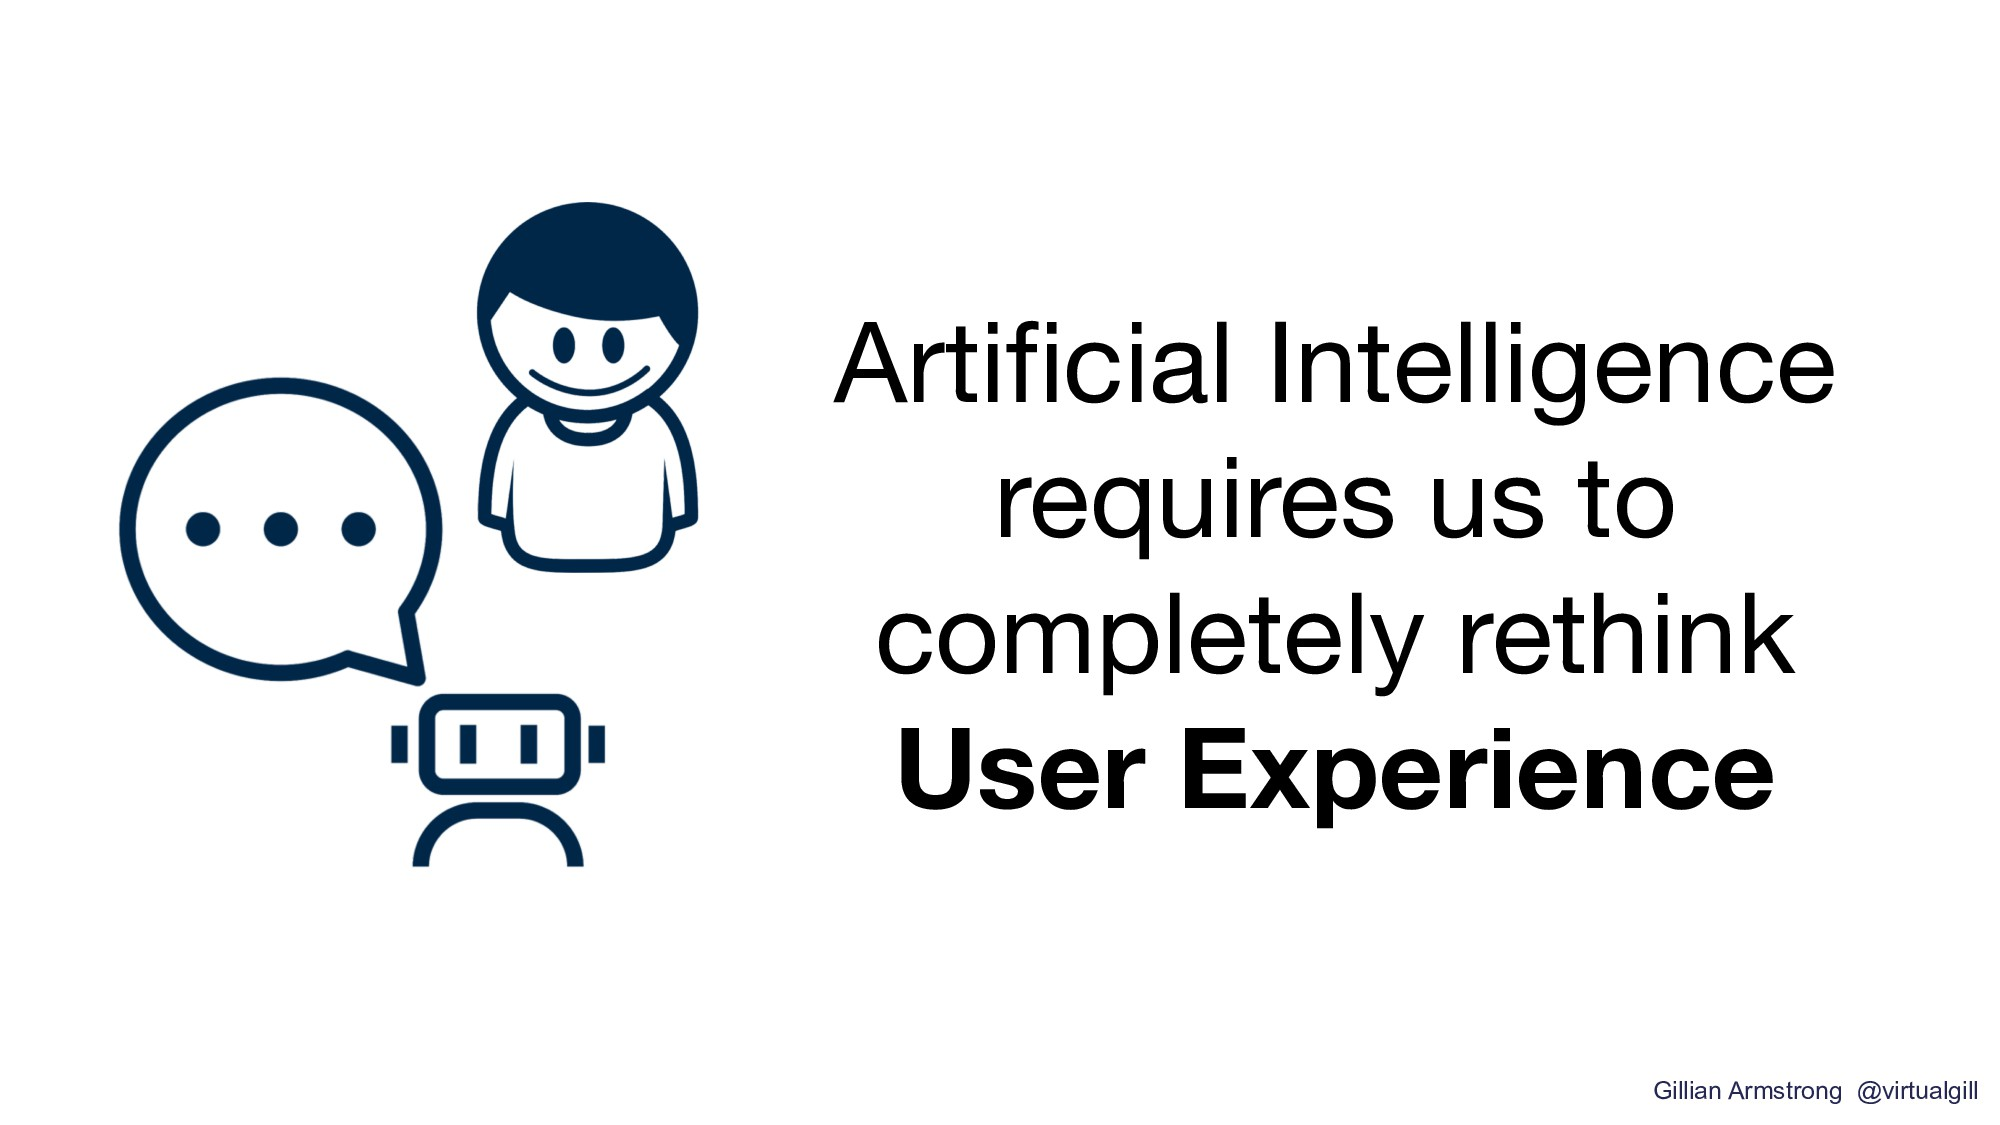 Artificial Intelligence requires us to complete...